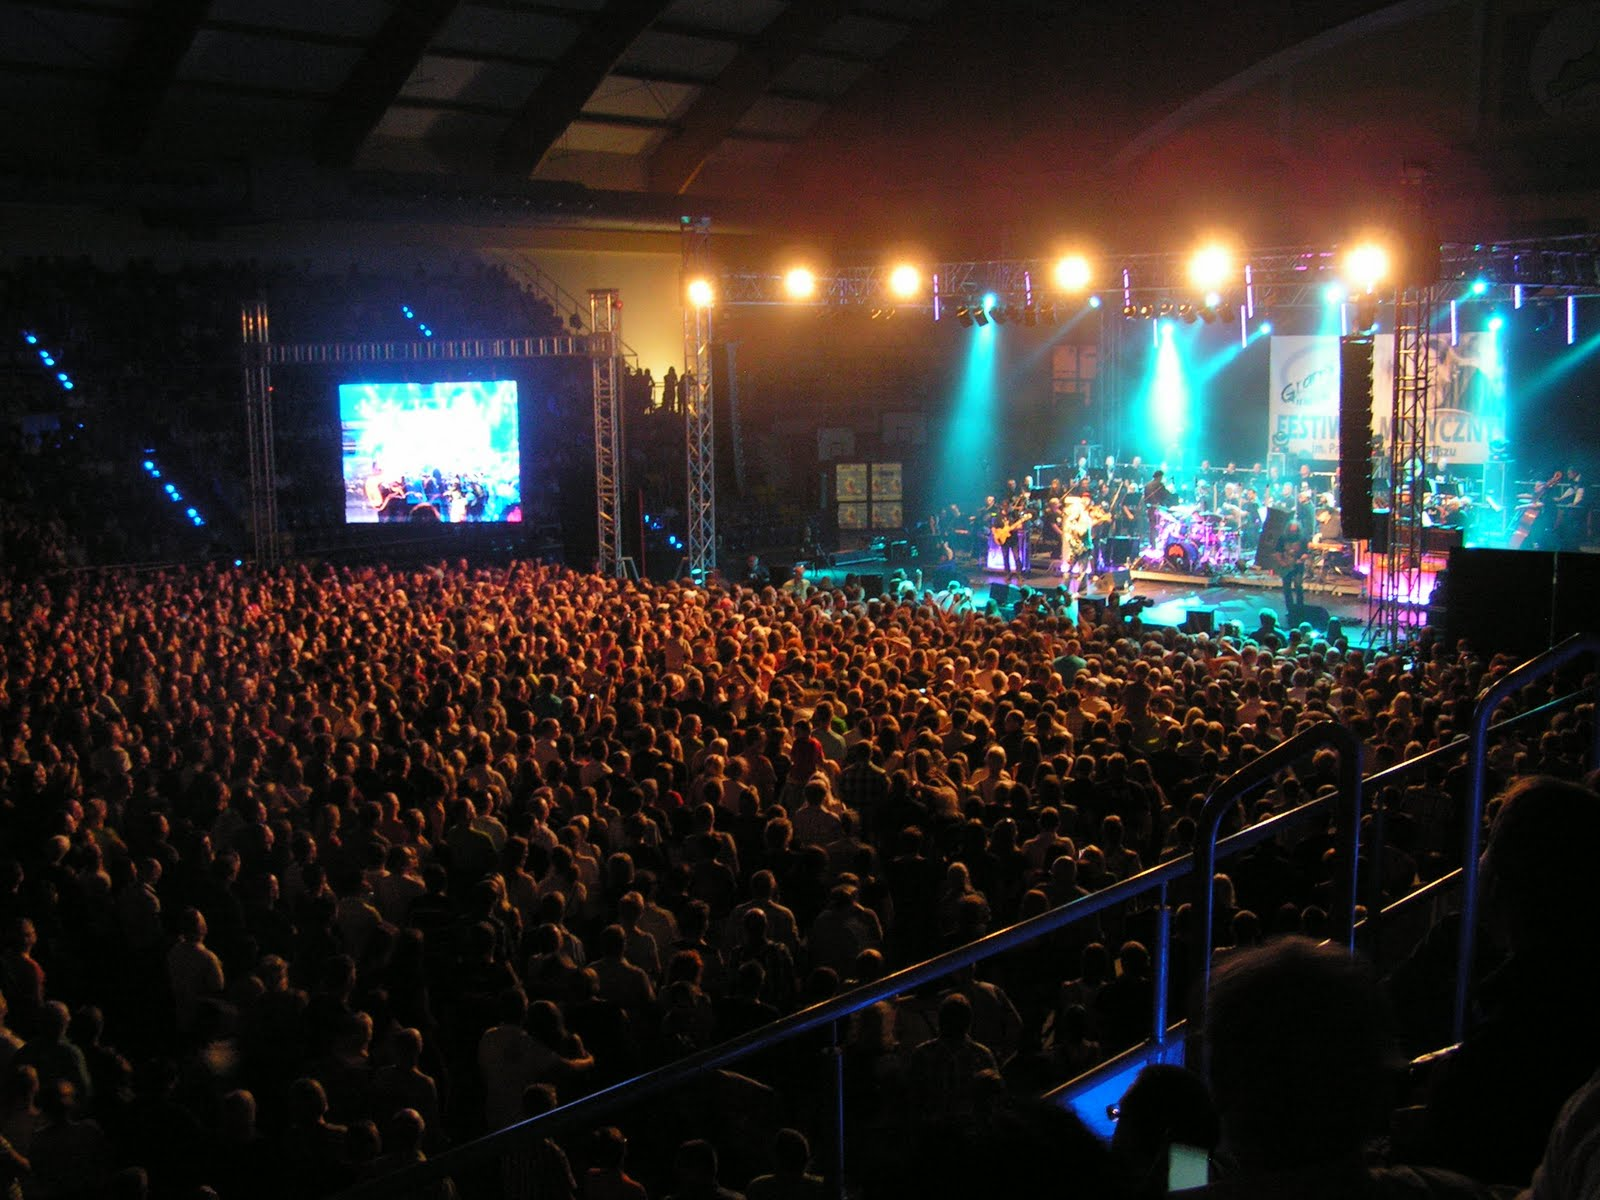 sound space 3000 people and my orchestrations of classic rock songs